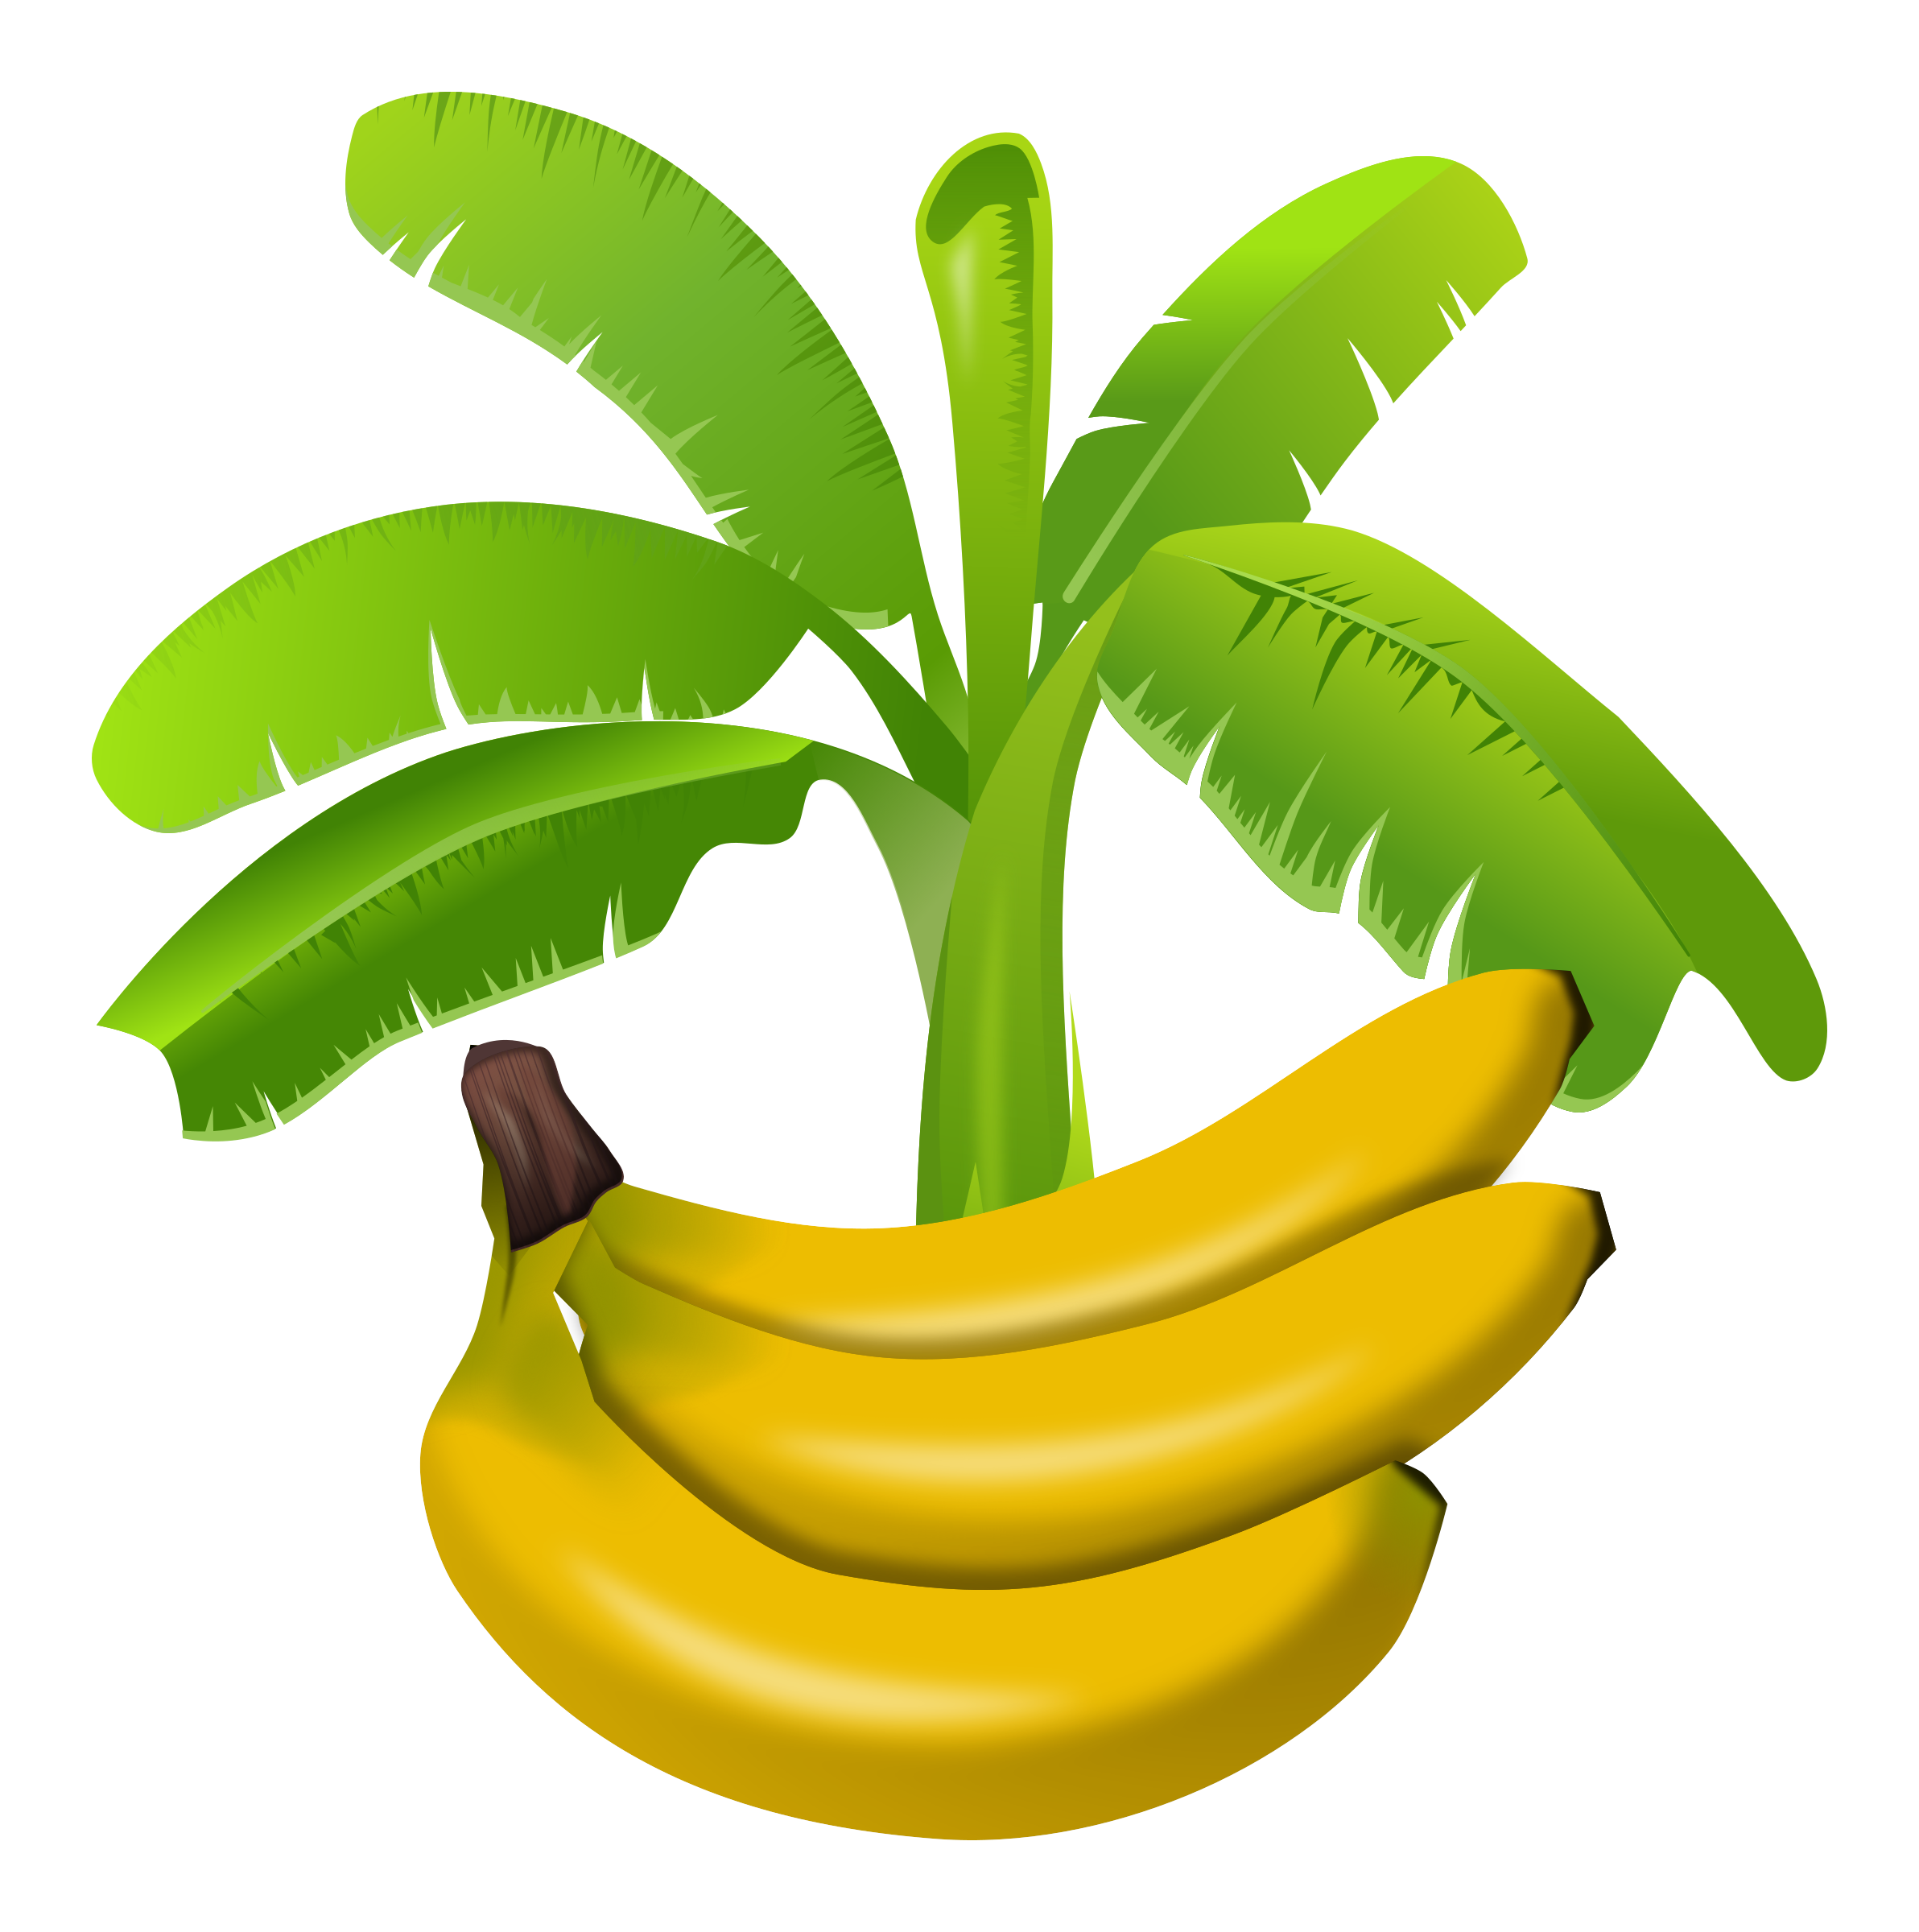 banana tree drawing png - photo #40